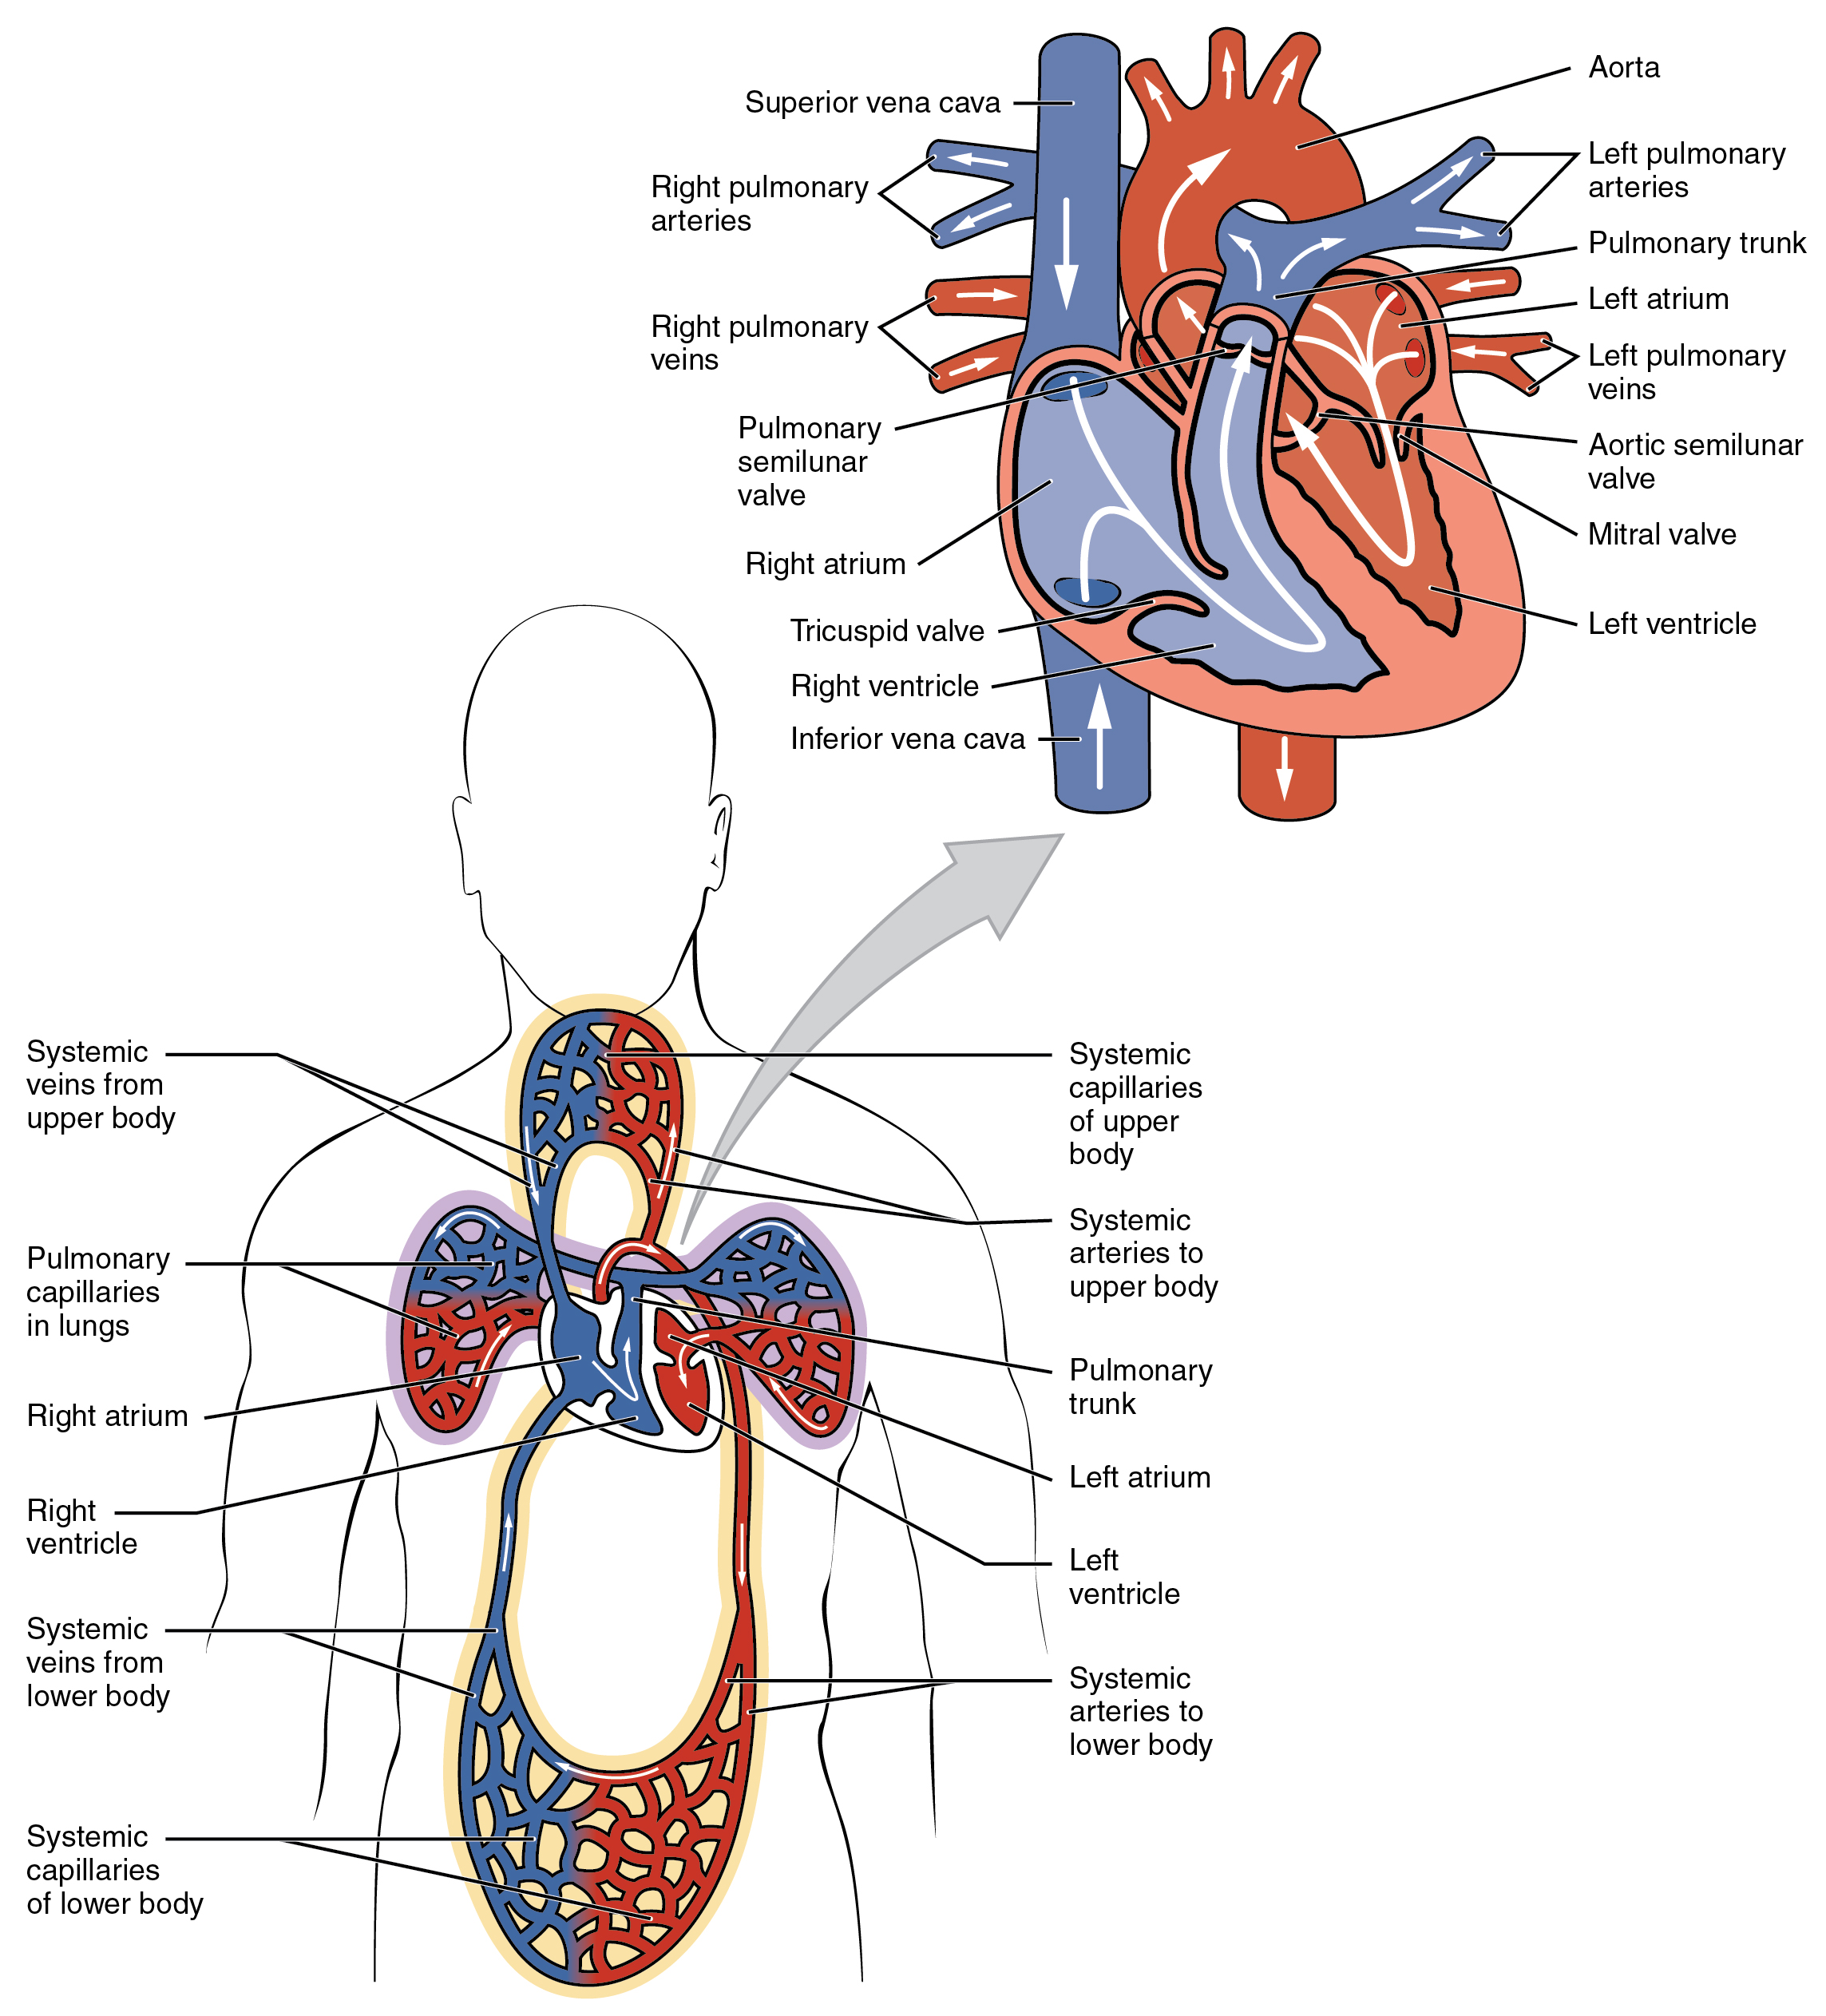 Anatomy and physiology heart anatomy the top panel shows the human heart with the arteries and veins labeled the bottom fandeluxe Choice Image